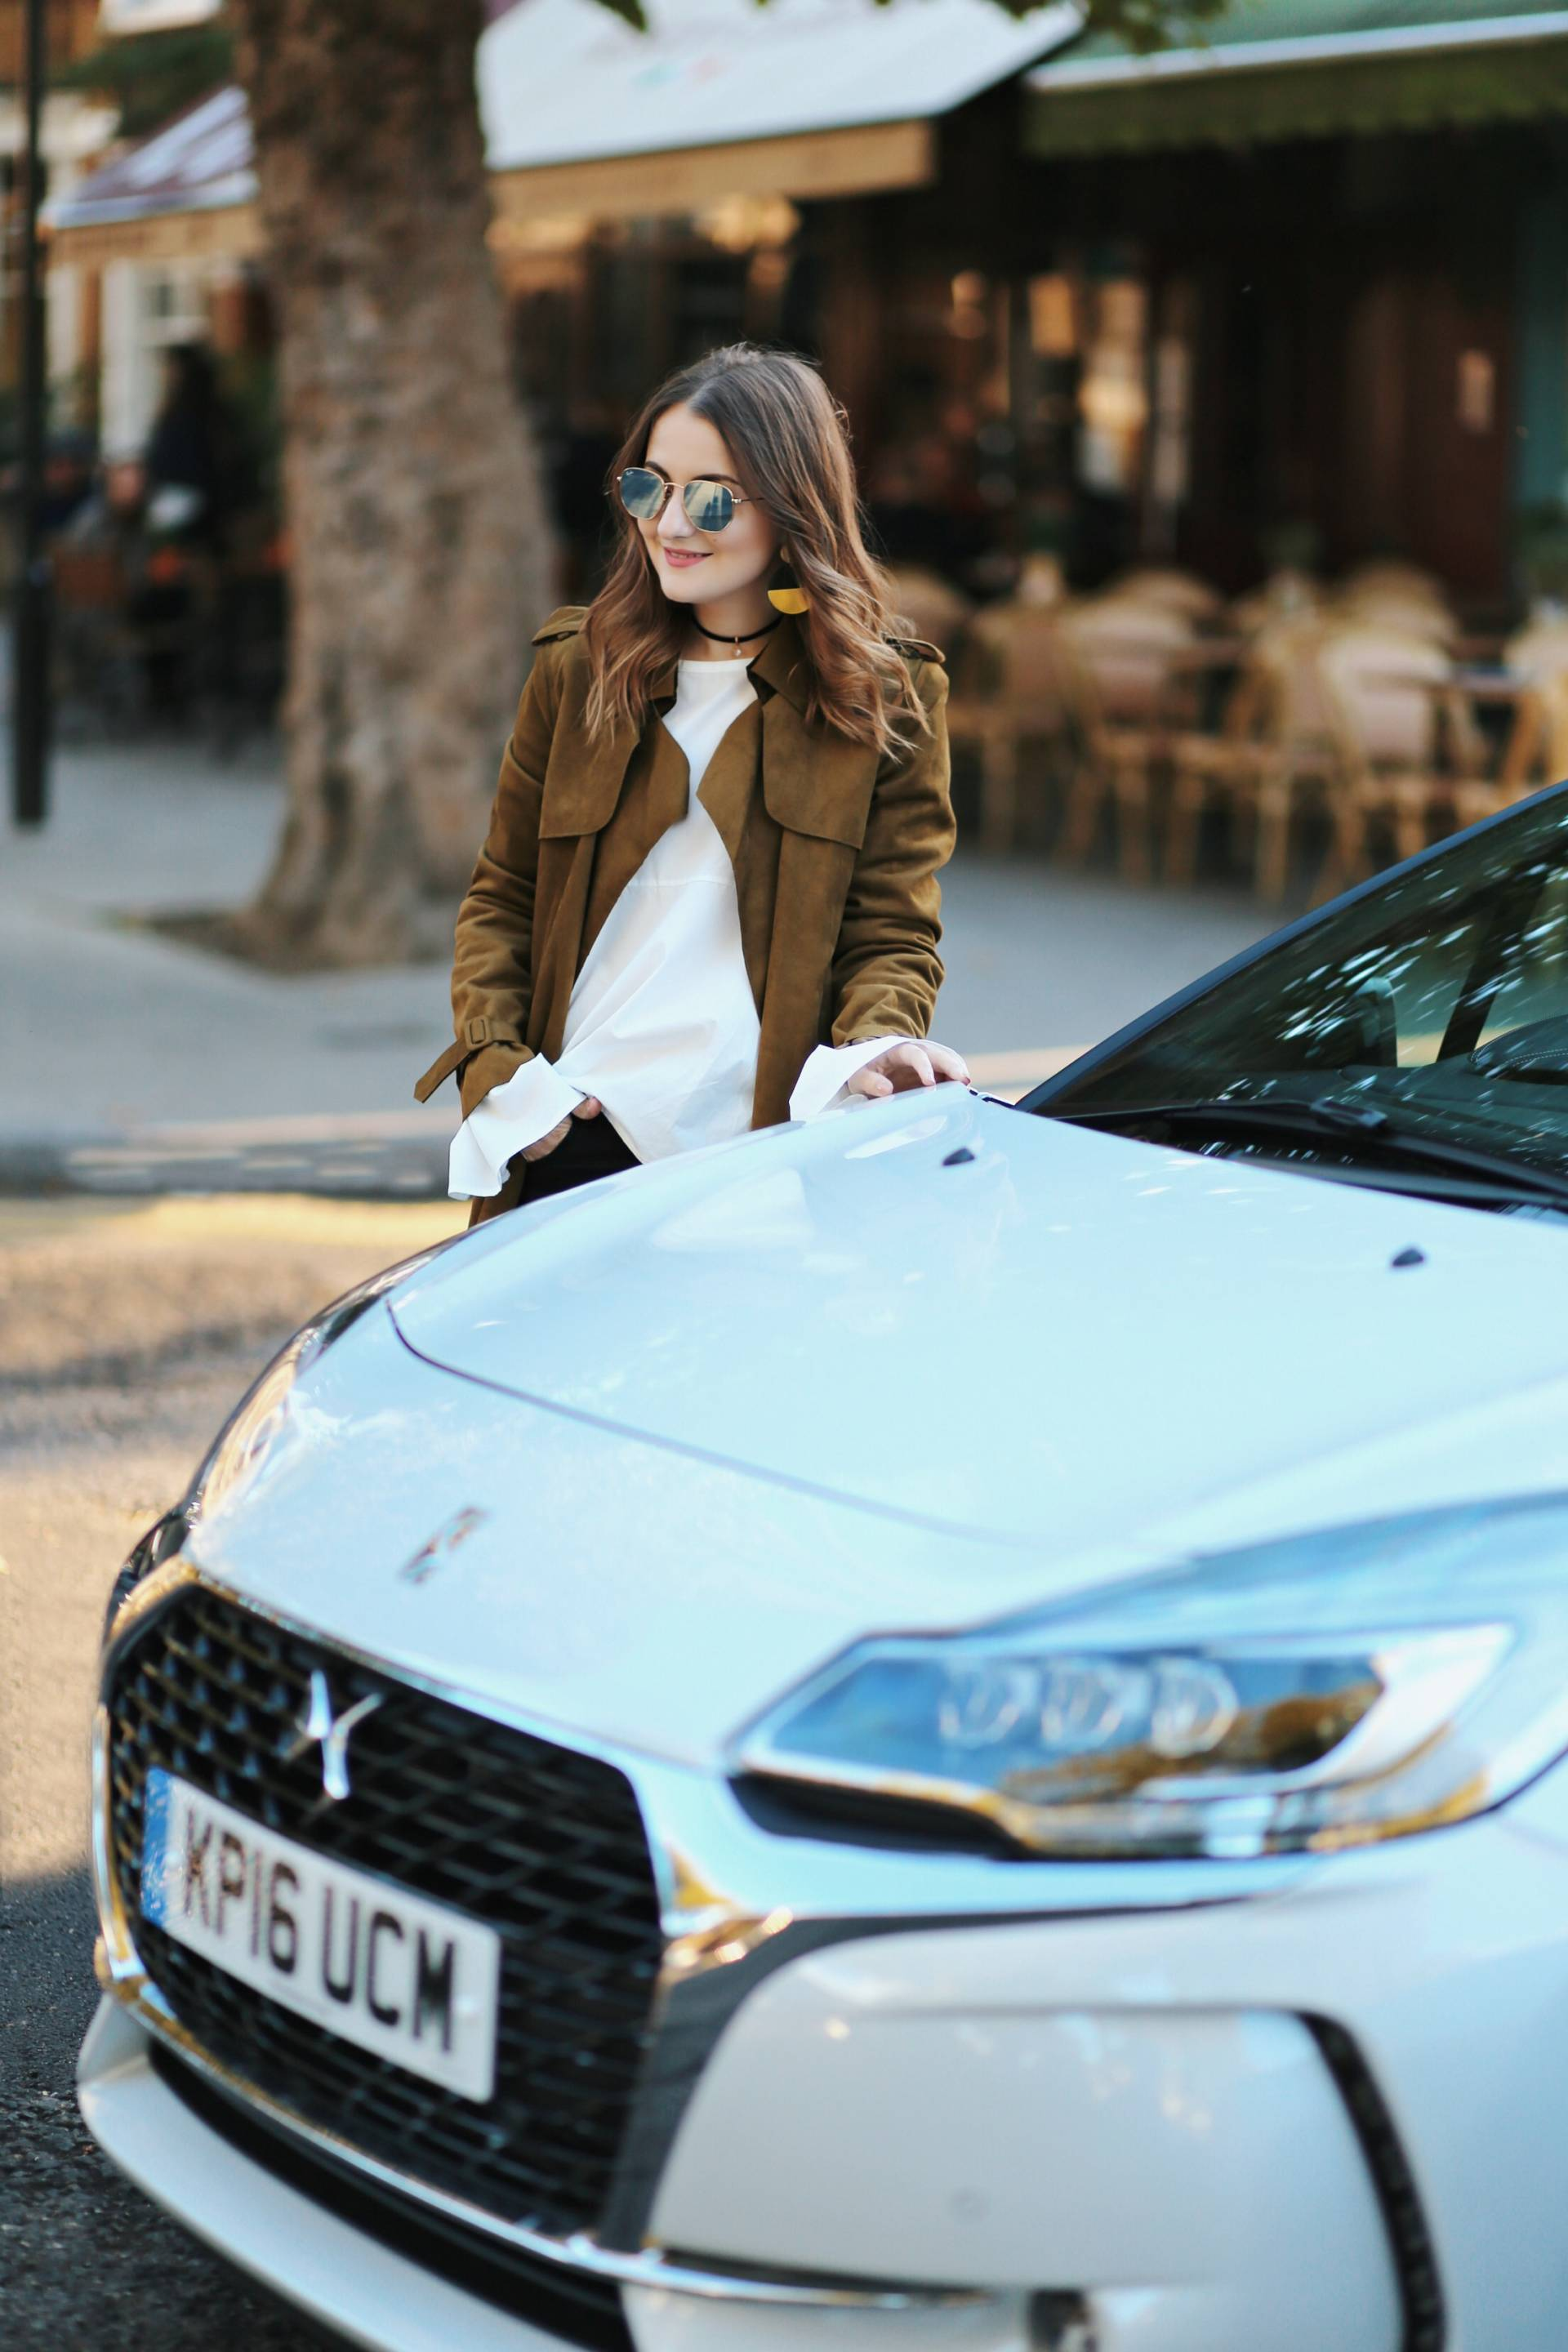 The car every fashionista will want - the NEW DS3